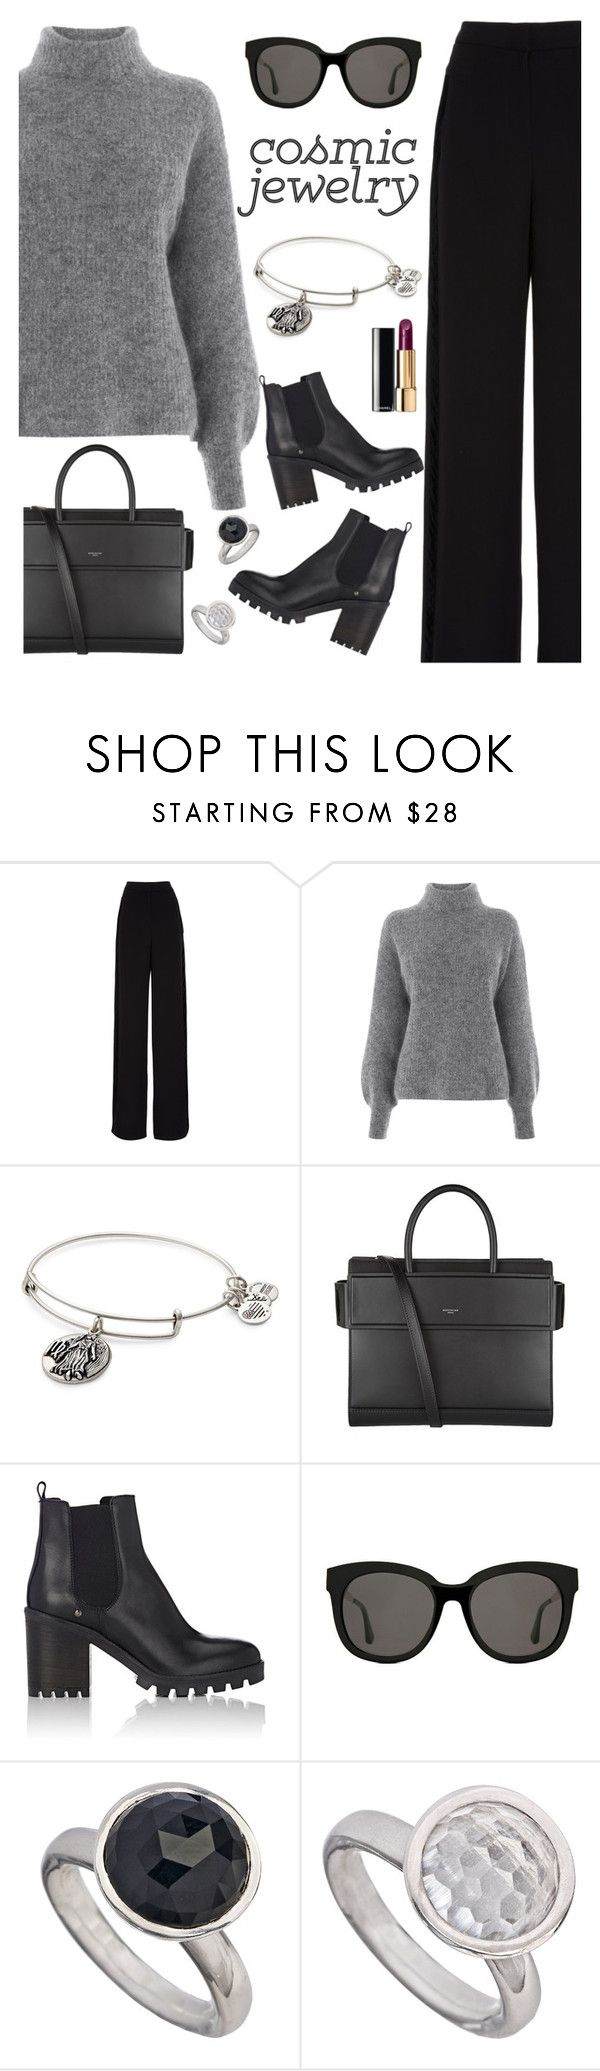 """Cosmic Jewelry"" by rasa-j ❤ liked on Polyvore featuring Rochas, Warehouse, Alex and Ani, Givenchy, Barneys New York, Gentle Monster, Chanel, womensFashion and cosmicjewelry"